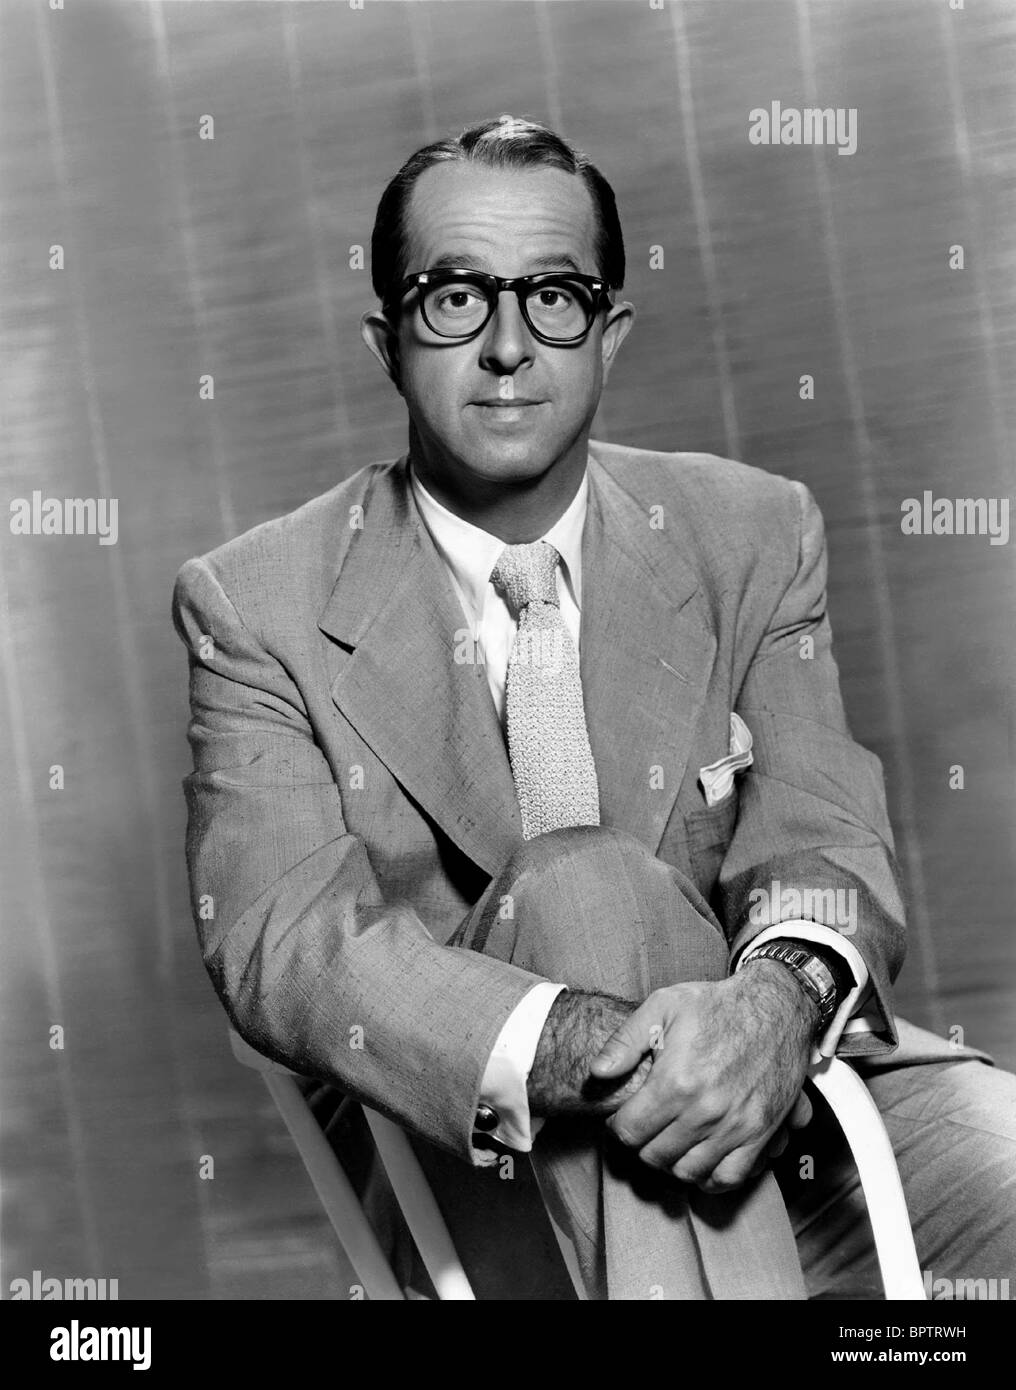 PHIL SILVERS ACTOR (1944) - Stock Image